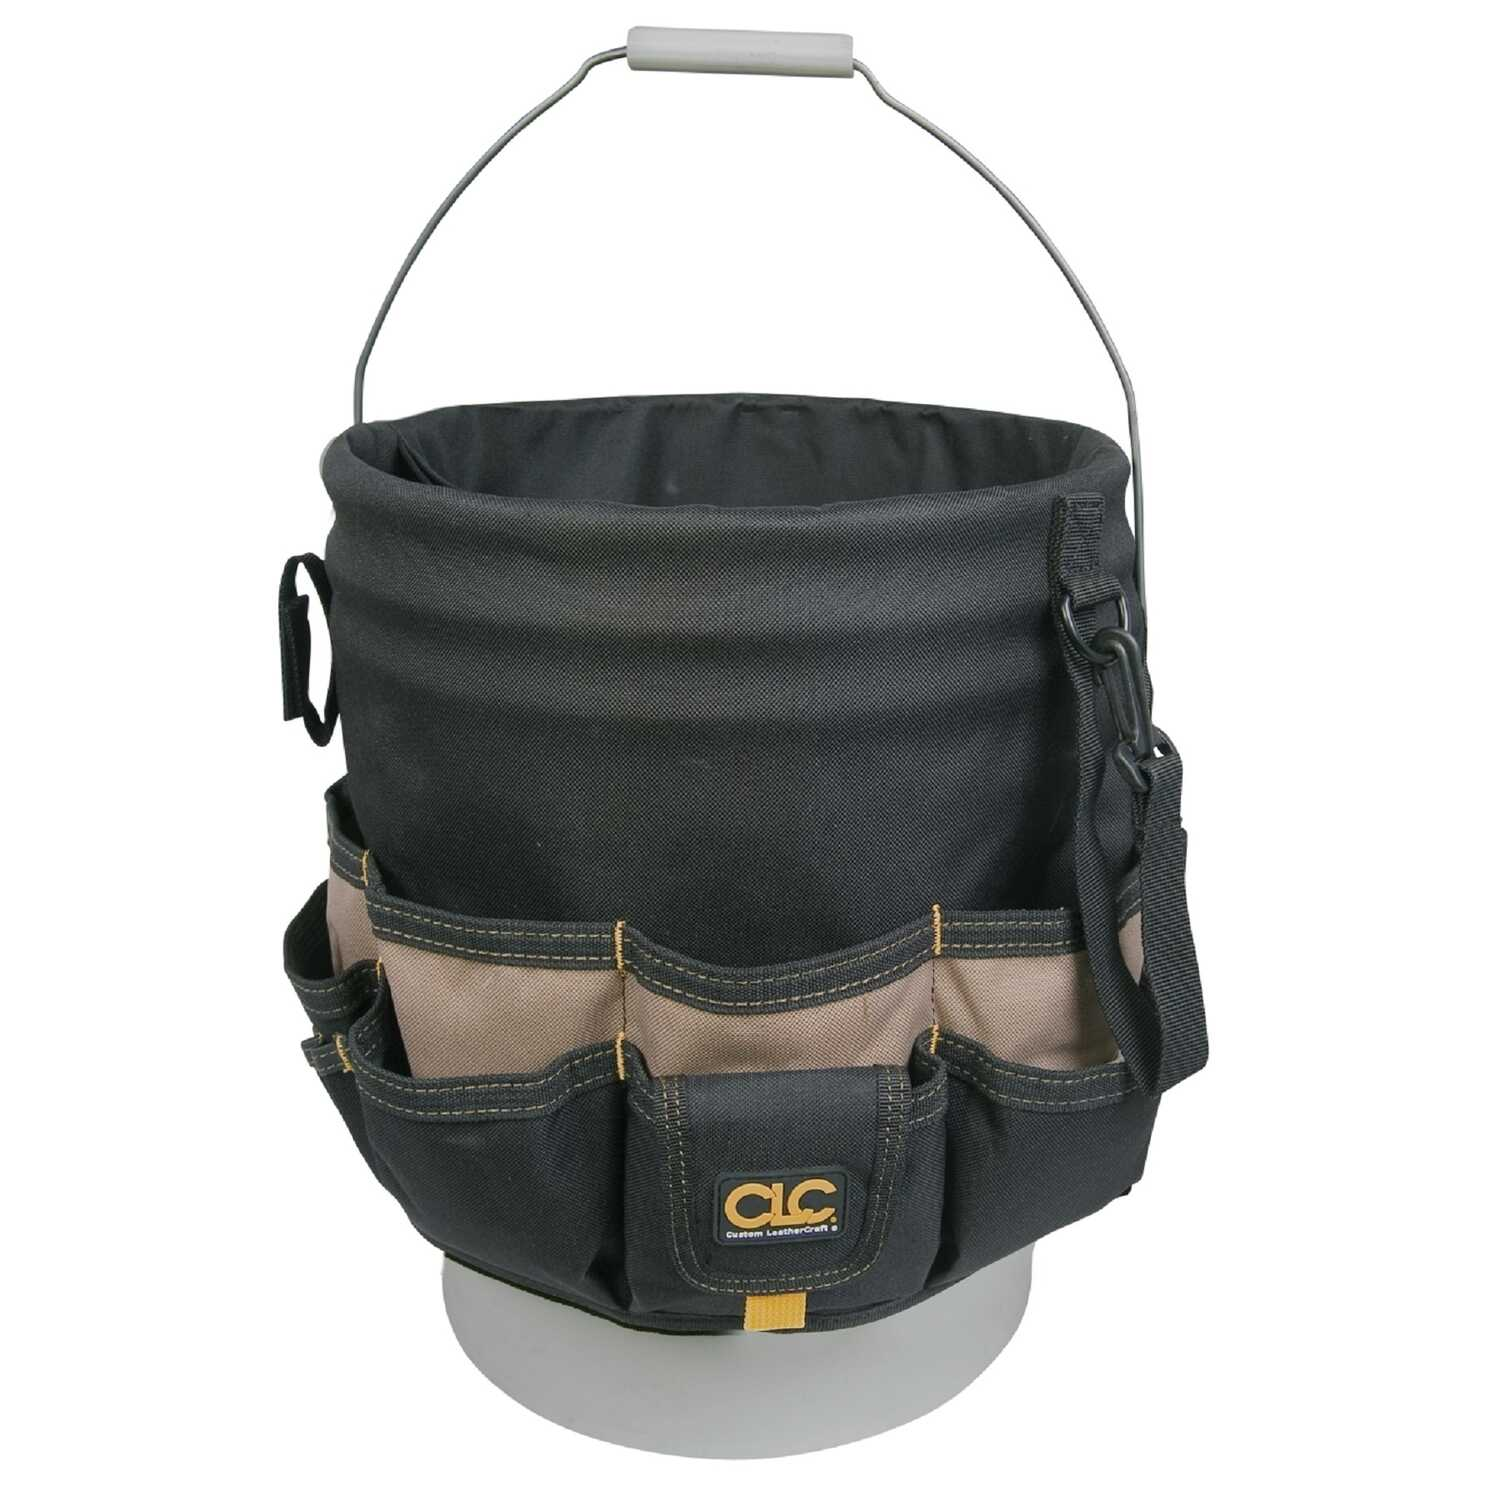 CLC  3 in. W x 12.75 in. H Polyester  Bucket Organizer  48 pocket Black/Tan  1 pc.